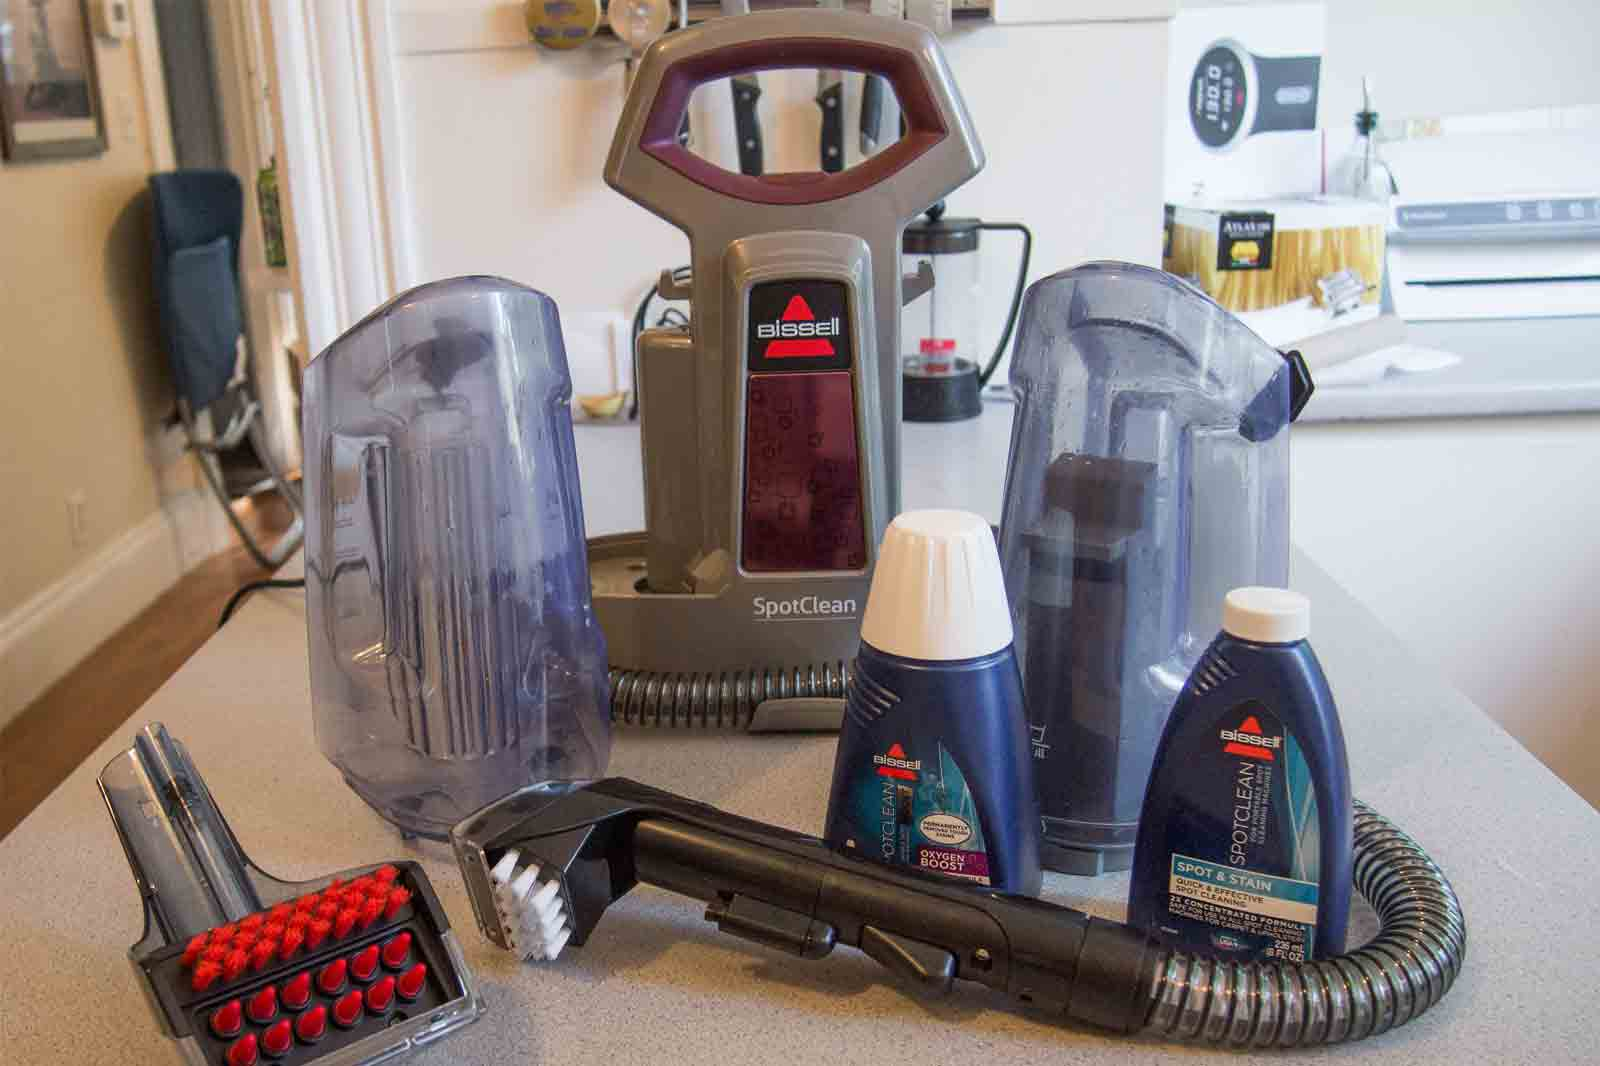 Sofa Vacuum Cleaner Brush The Best Portable Carpet And Upholstery Cleaner